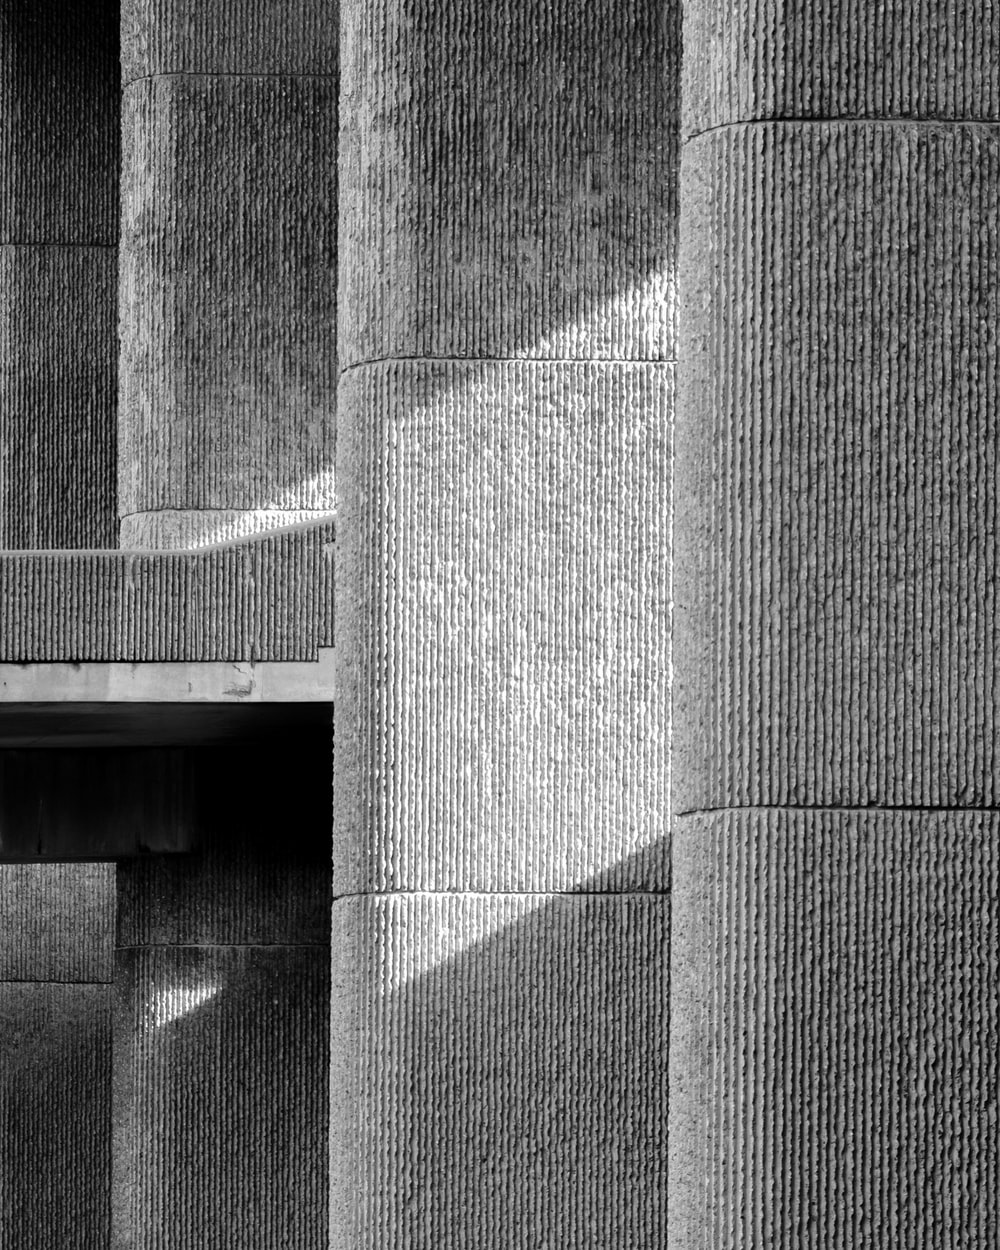 grayscale photo of concrete wall